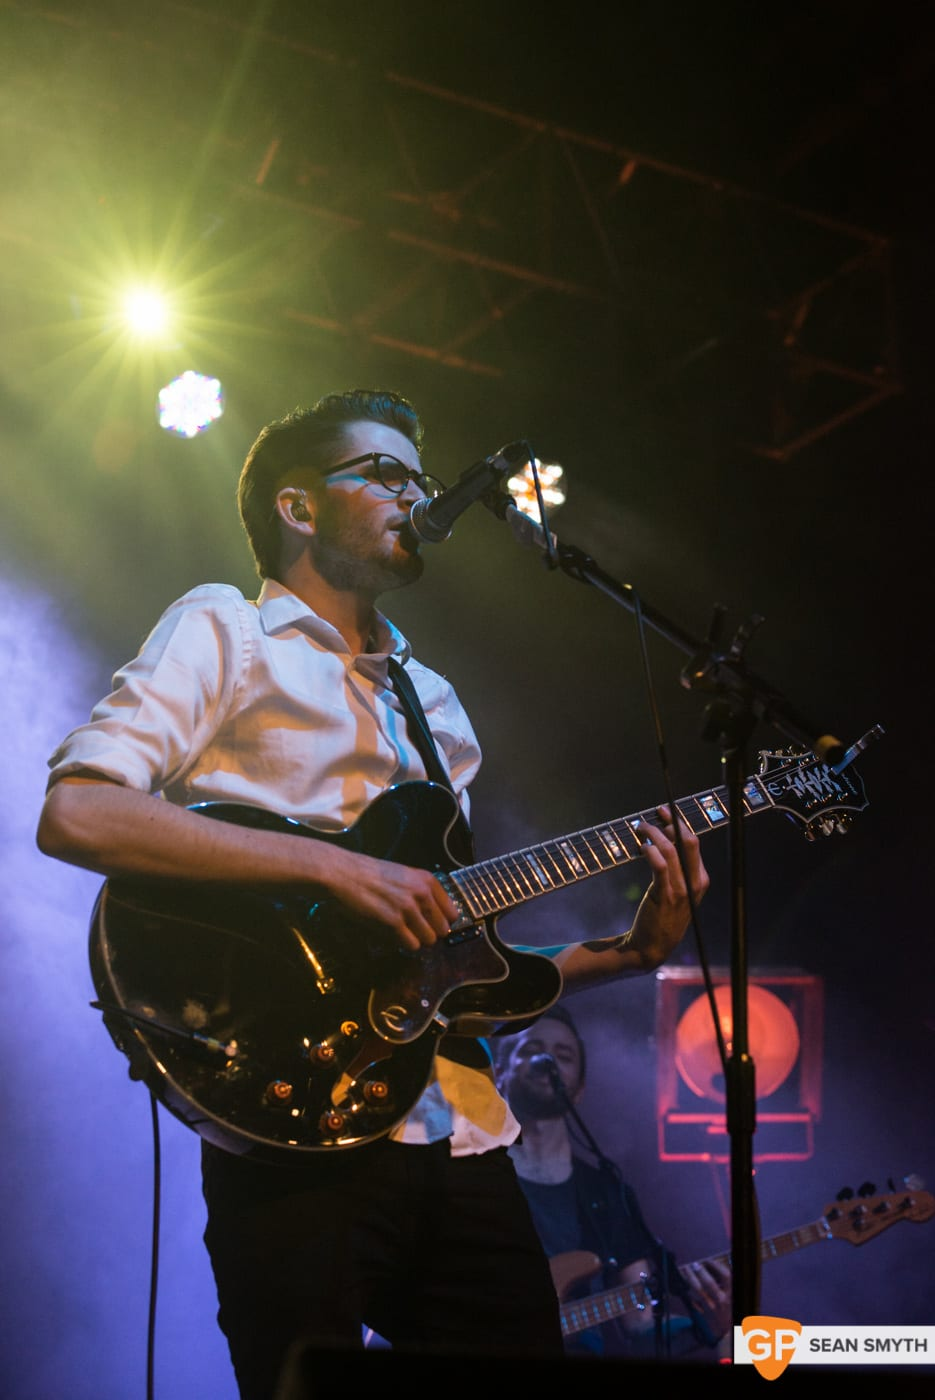 hudson-taylor-at-the-olympia-theatre-26-2-15-by-sean-smyth-21-of-26_16756757745_o